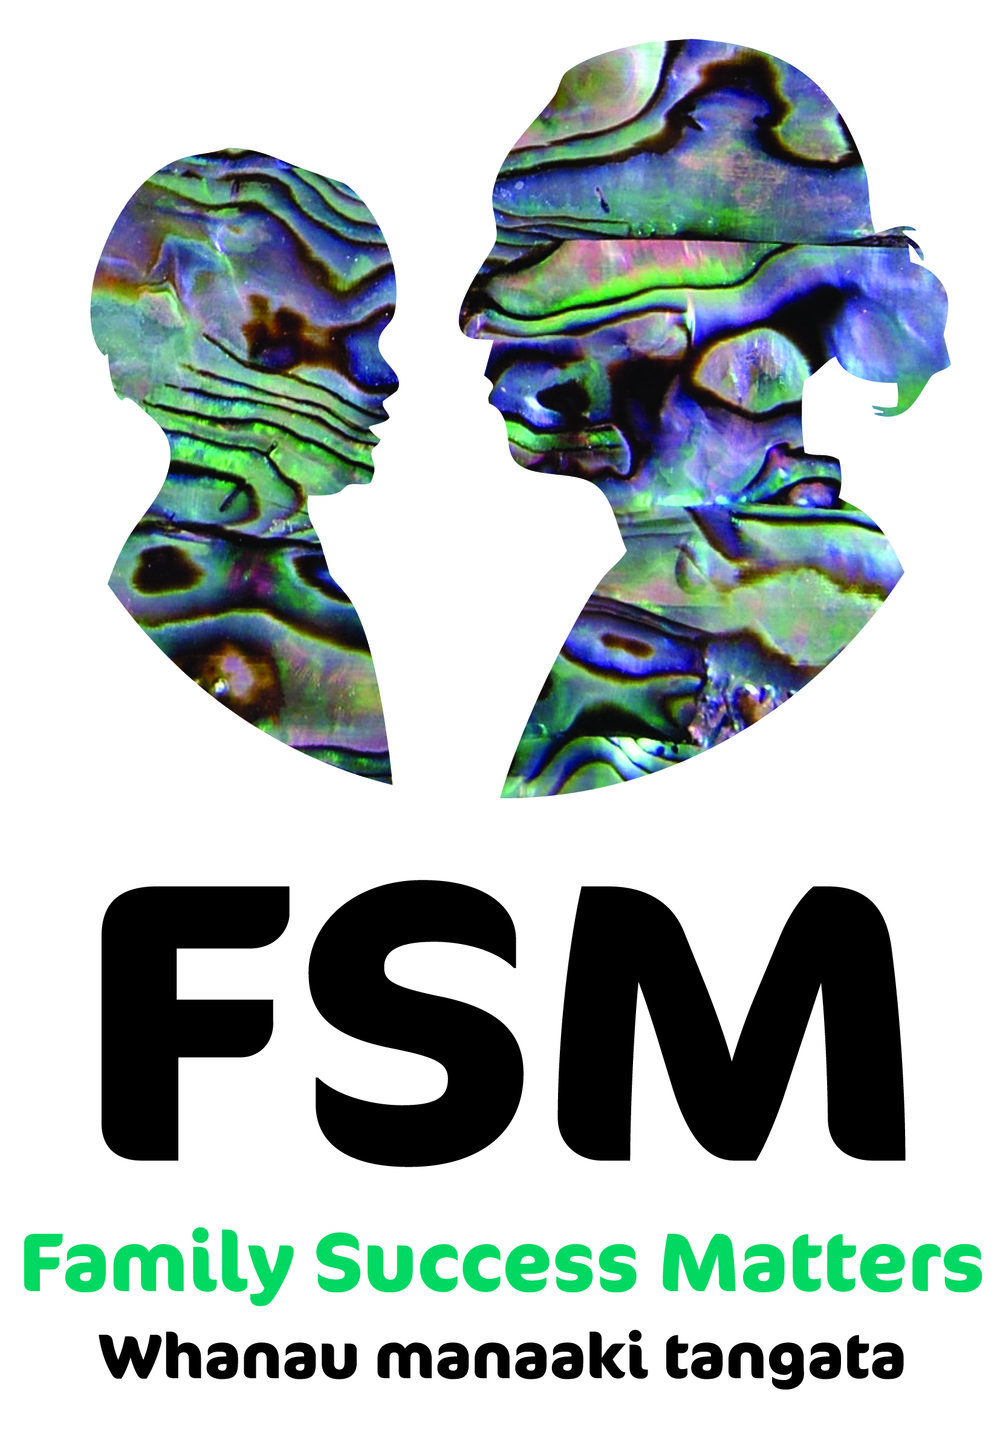 FSM_Logo18_Final_HR_CMYK.jpg